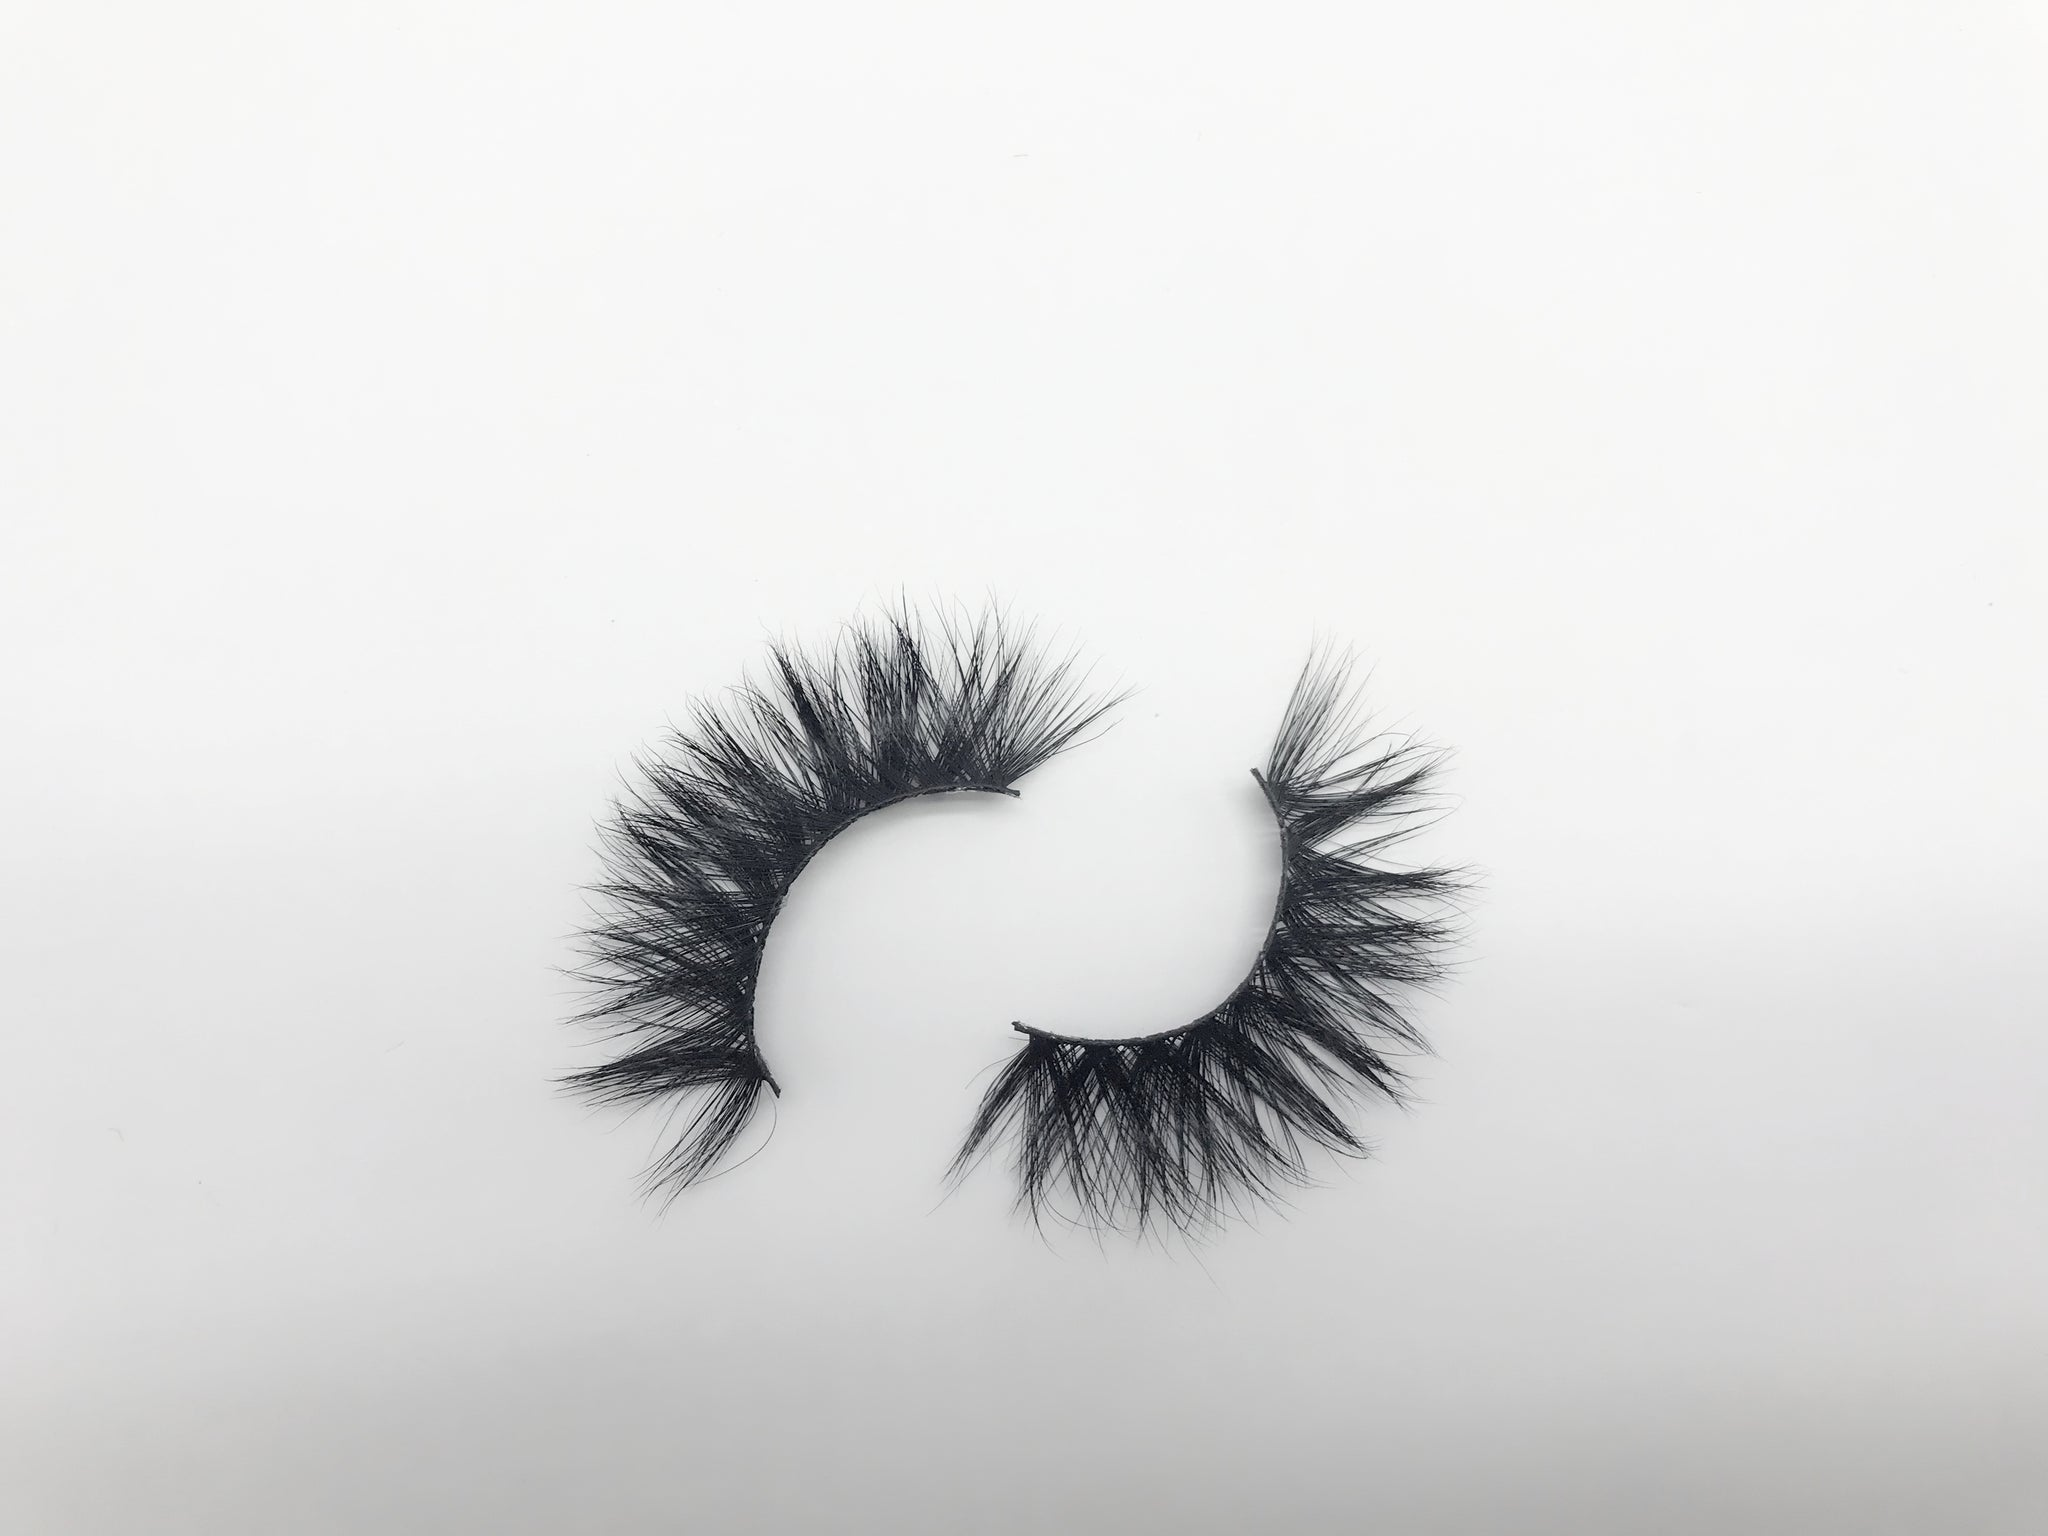 Glamour Volume Round Shape Fluffy Natural Mink Eyelashes-Carnation